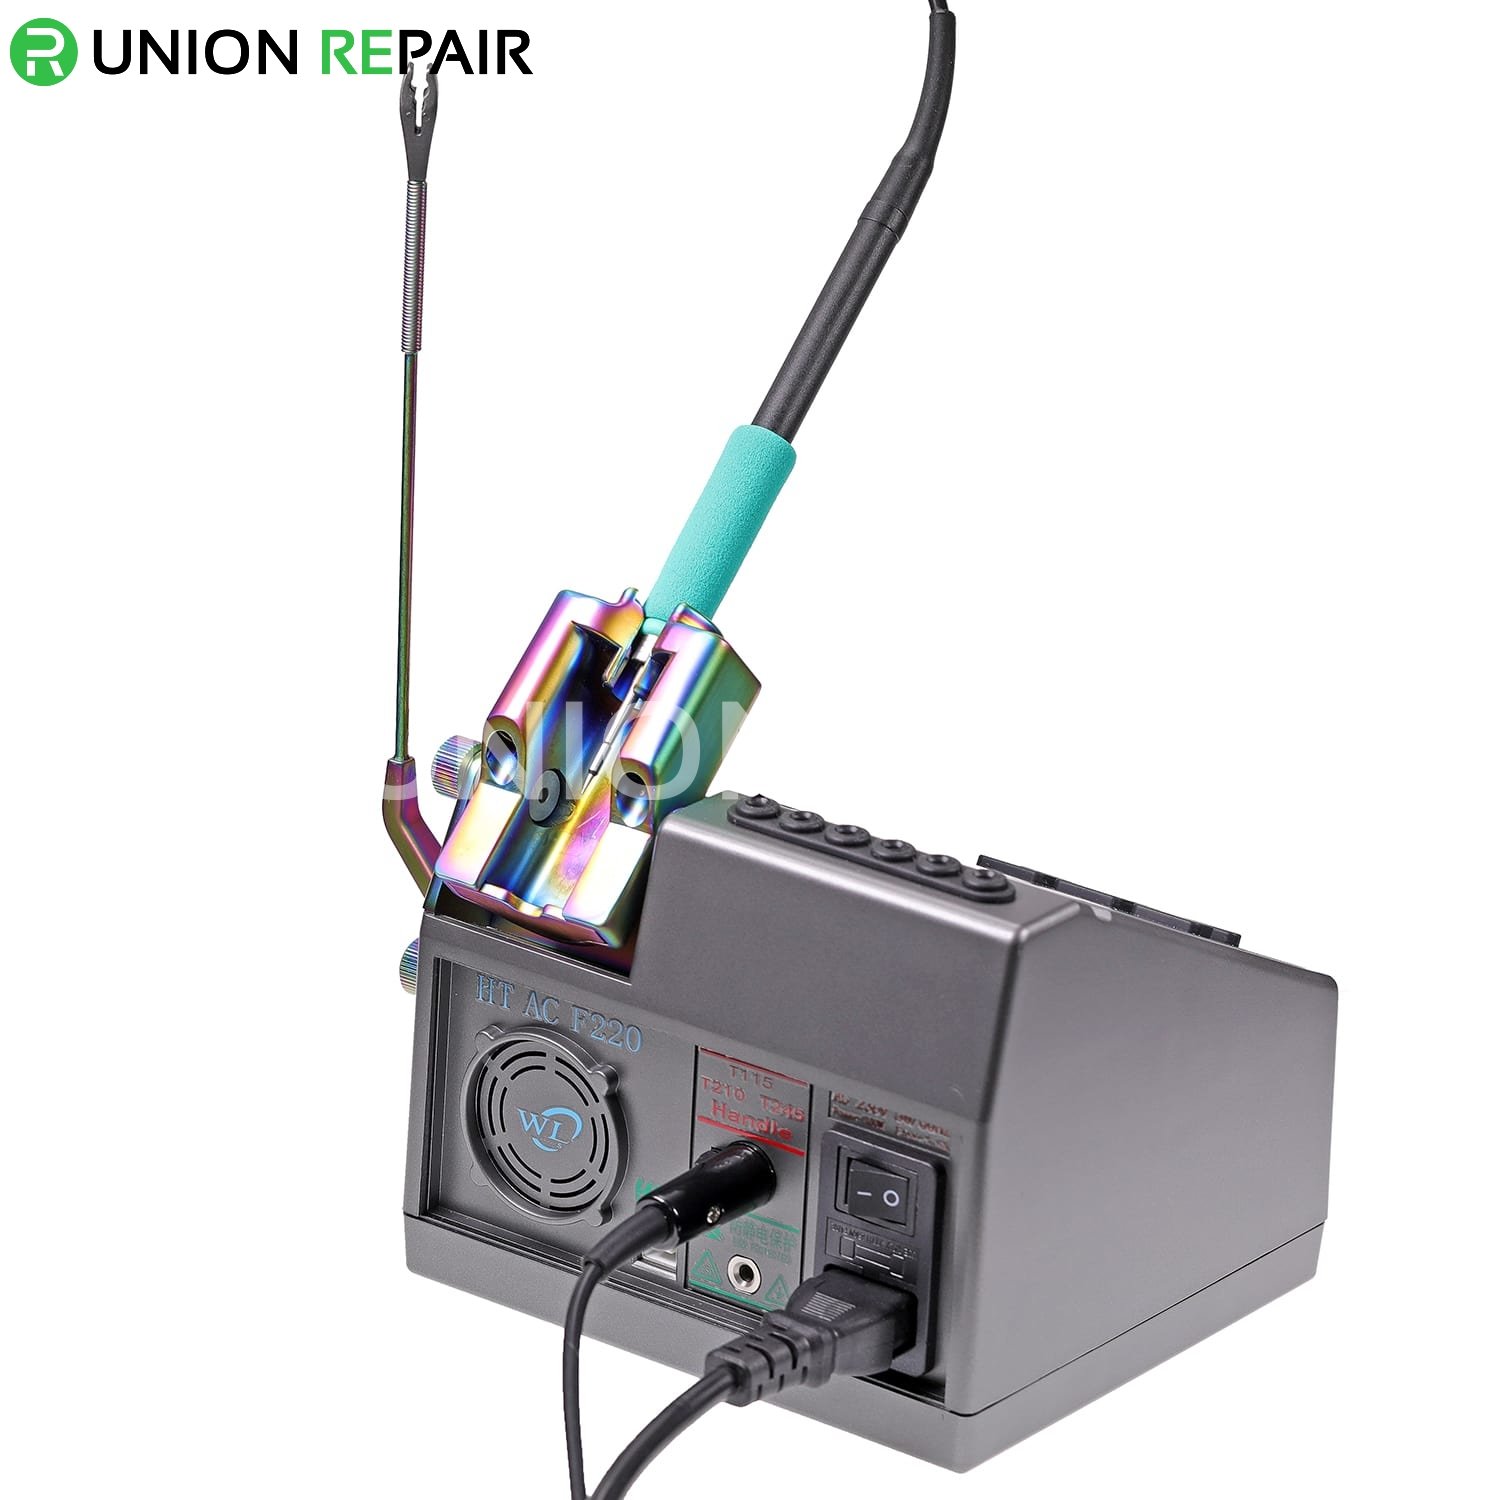 WL F220 Soldering Station with JBC C210 Handle